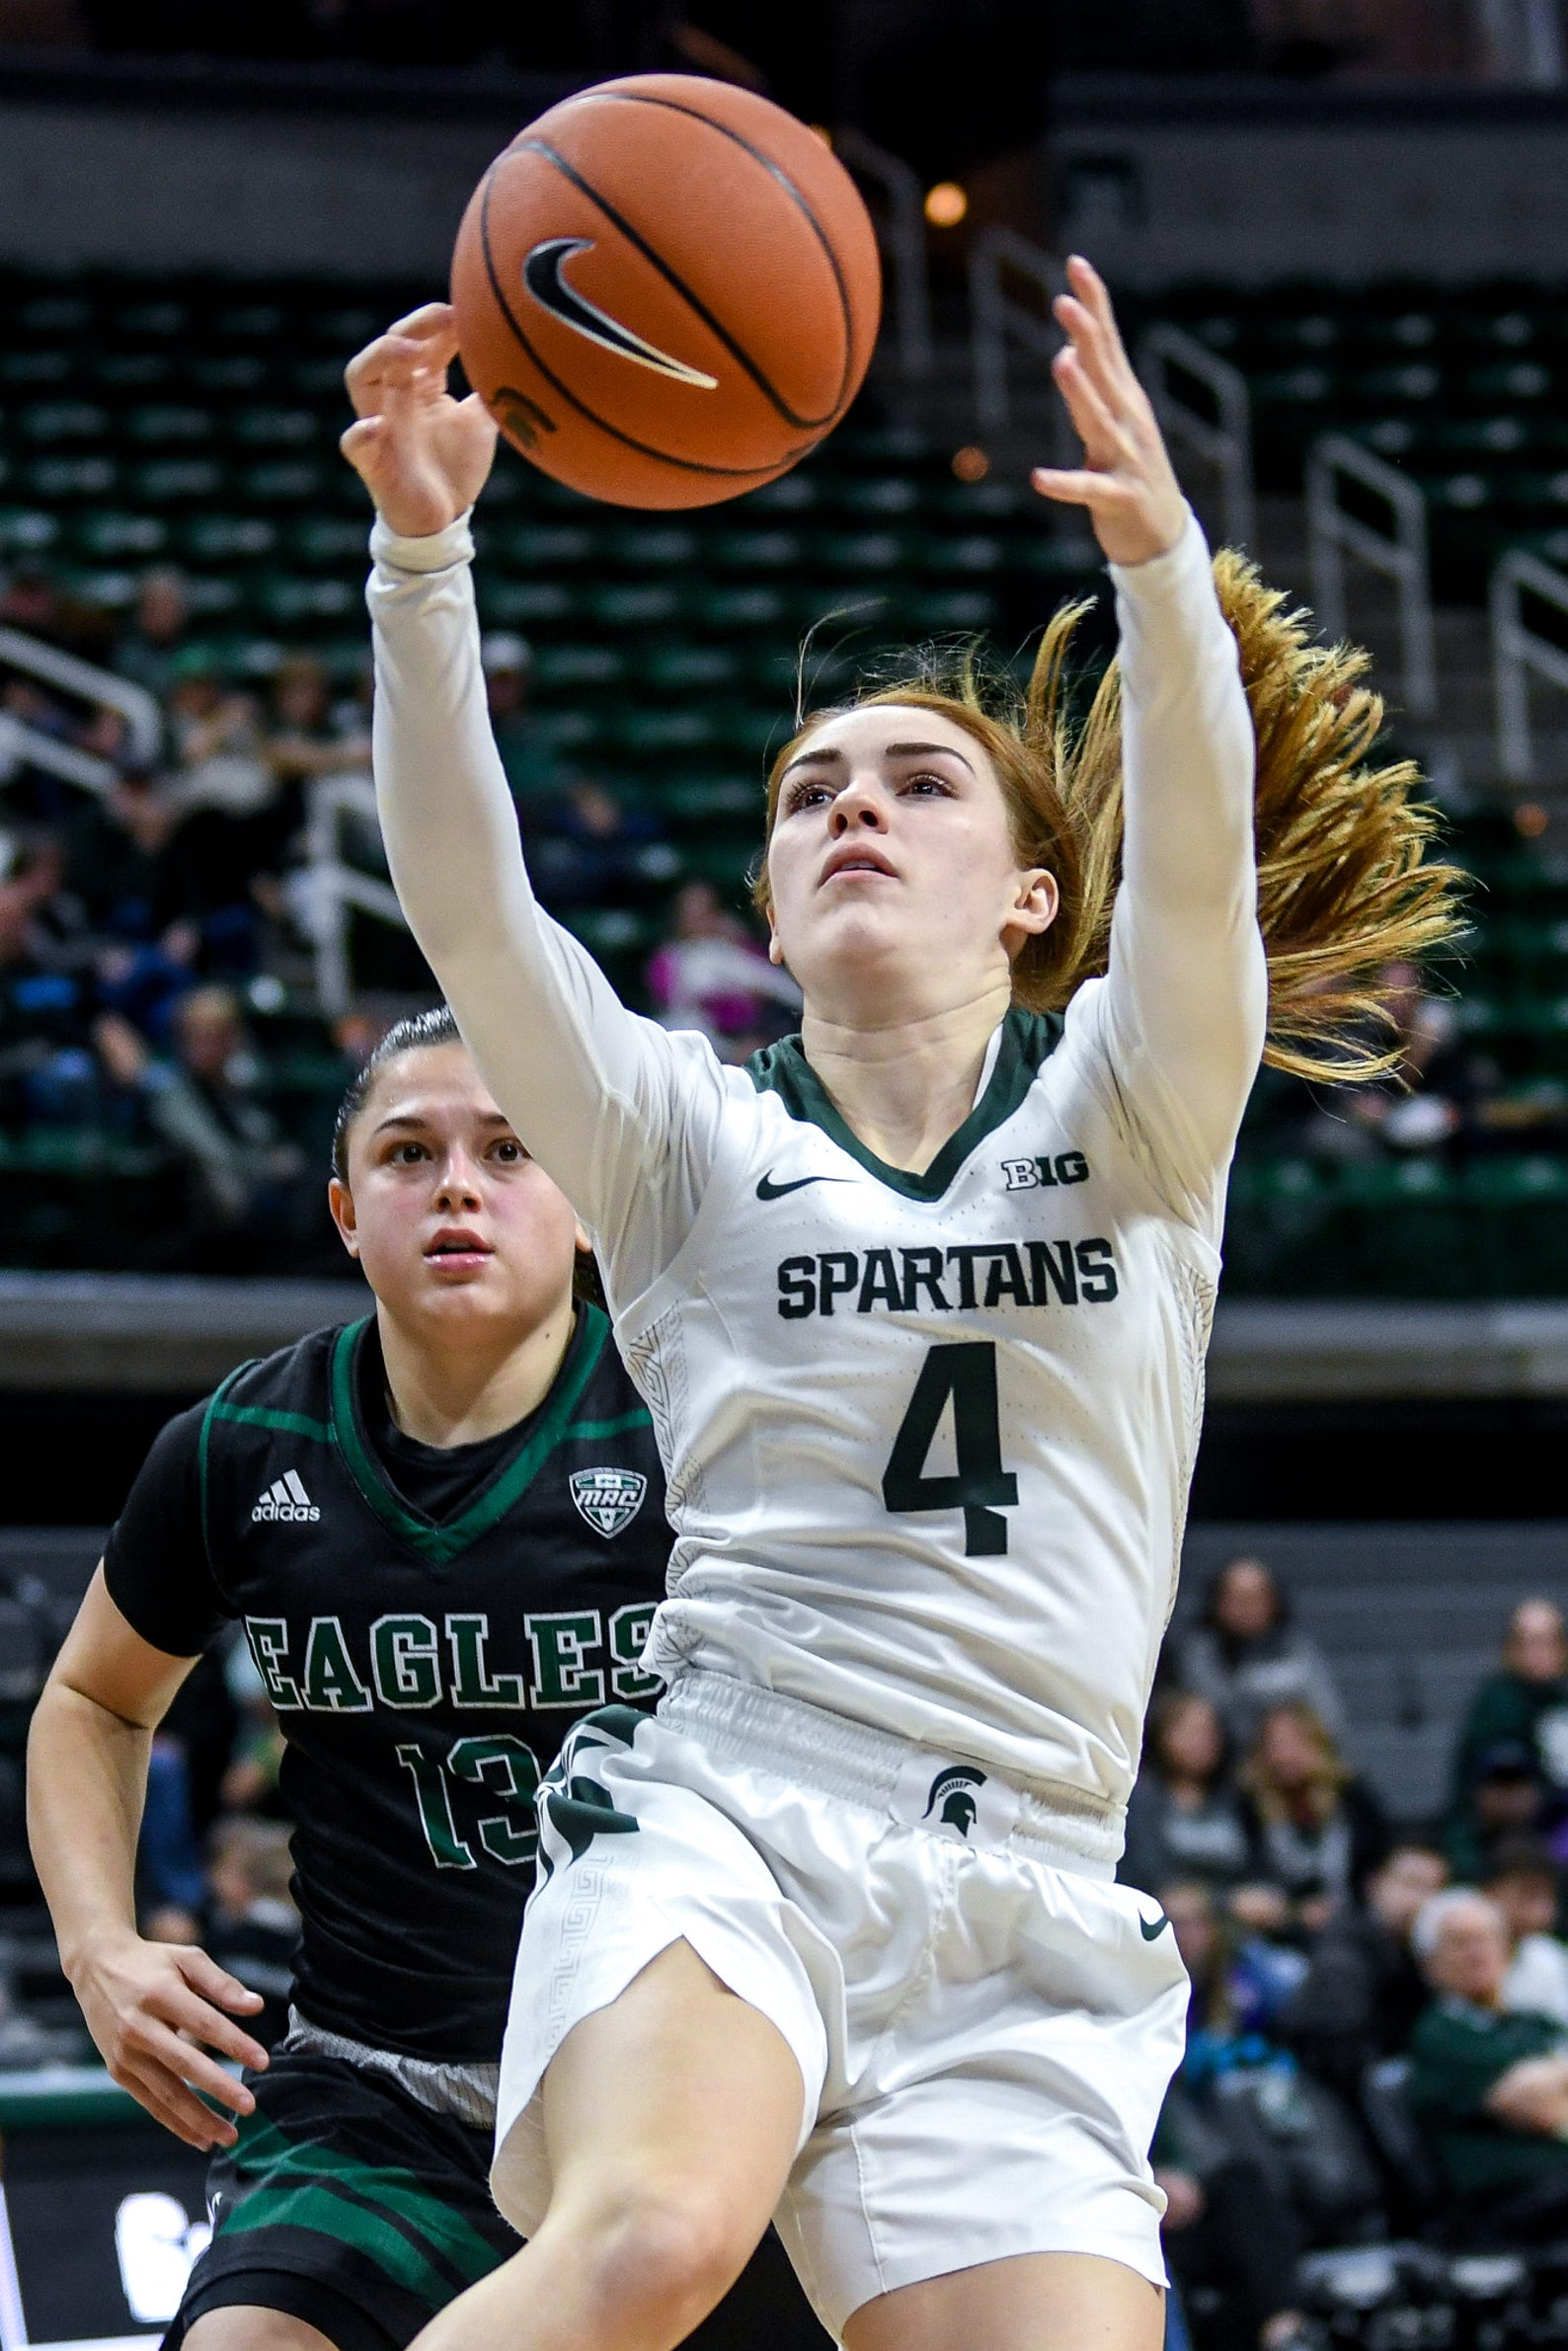 Michigan State's Taryn McCutcheon grabs a rebound as Eastern Michigan's Jenna Annecchiarico looks on during the fourth quarter on Tuesday, Nov. 5, 2019, at the Breslin Center in East Lansing.